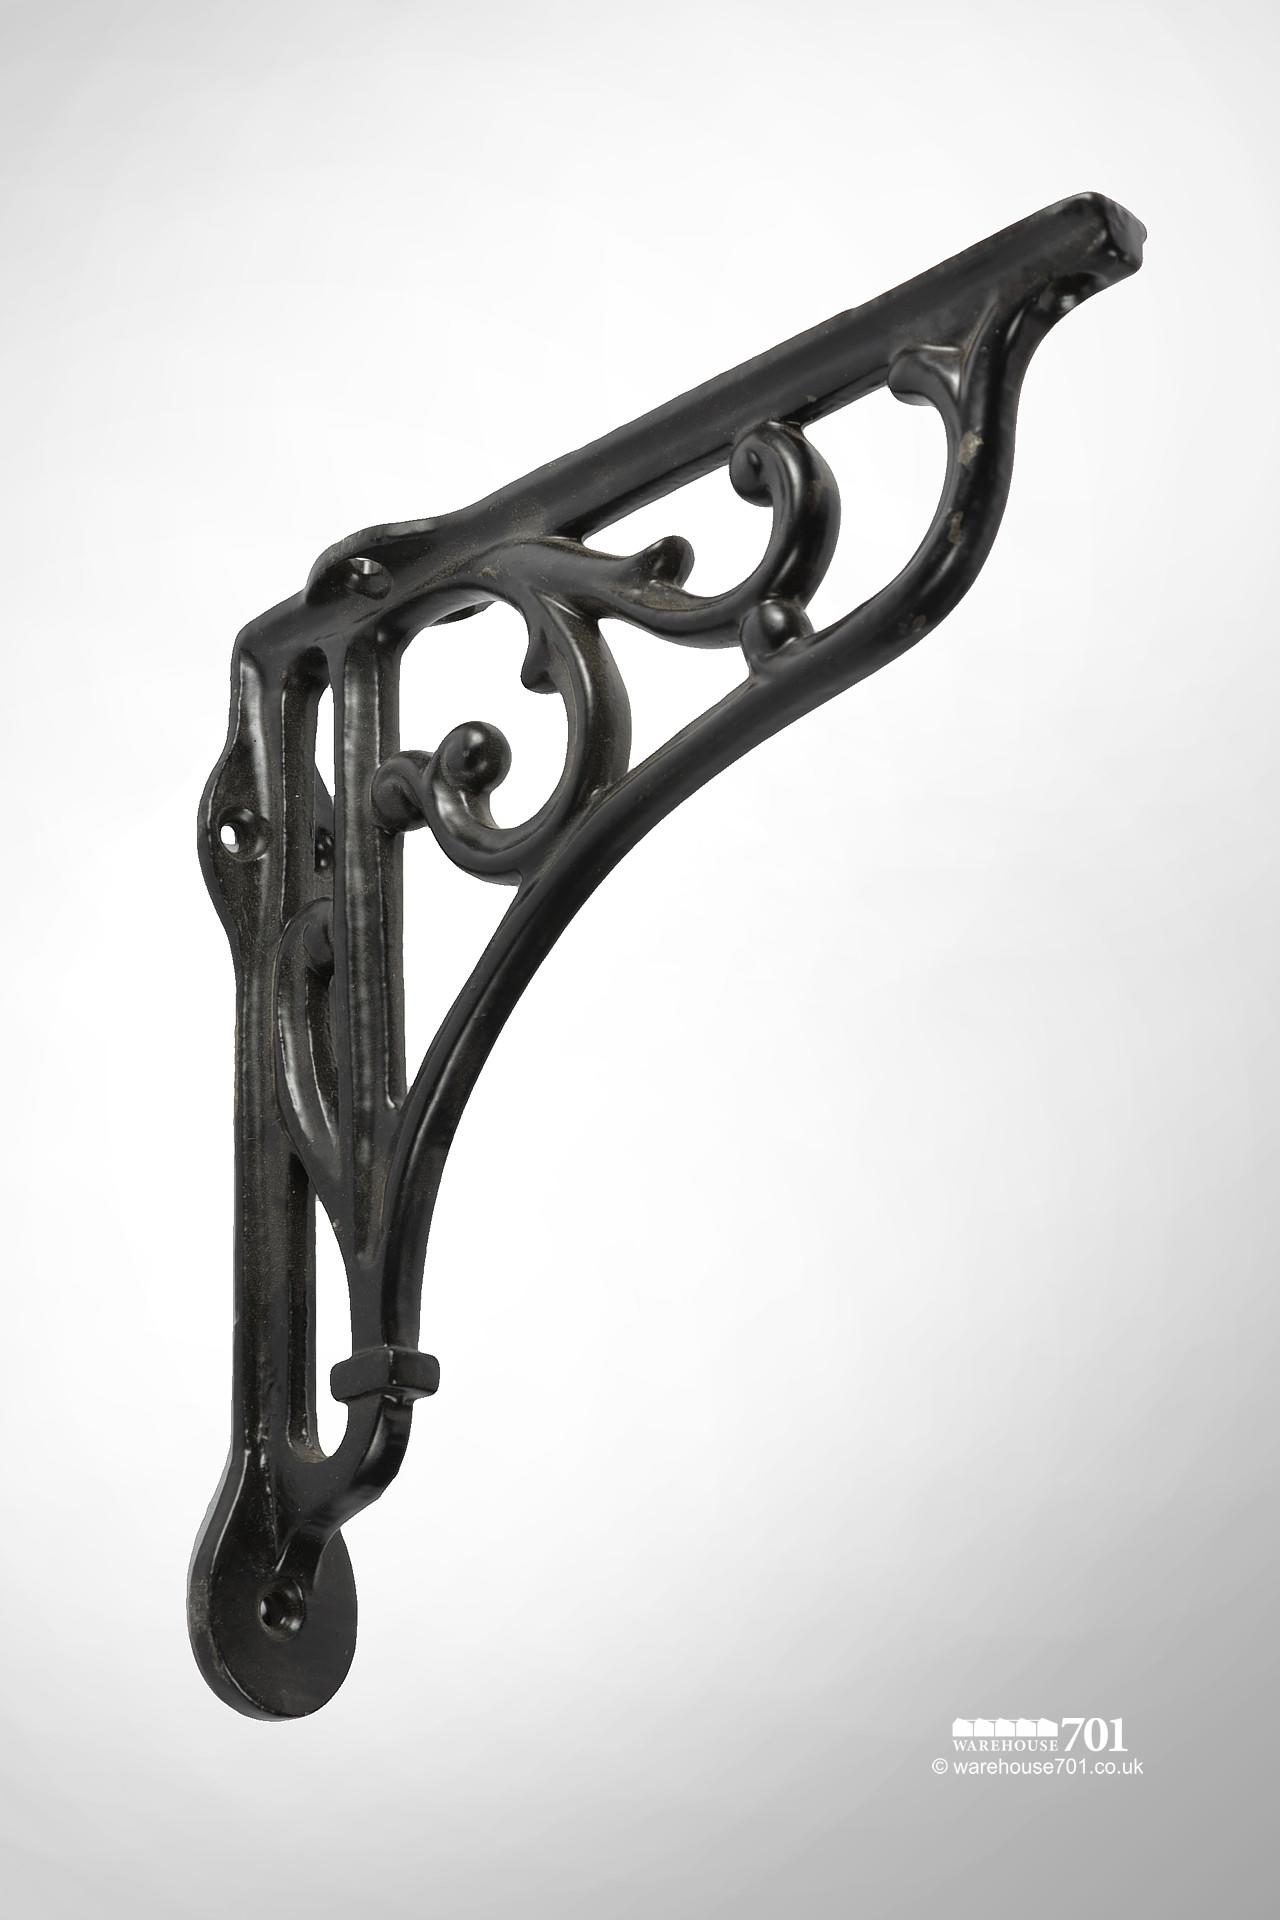 New Satin Black Cast Iron Shelf or Wall Bracket with a Decorative Scroll Design